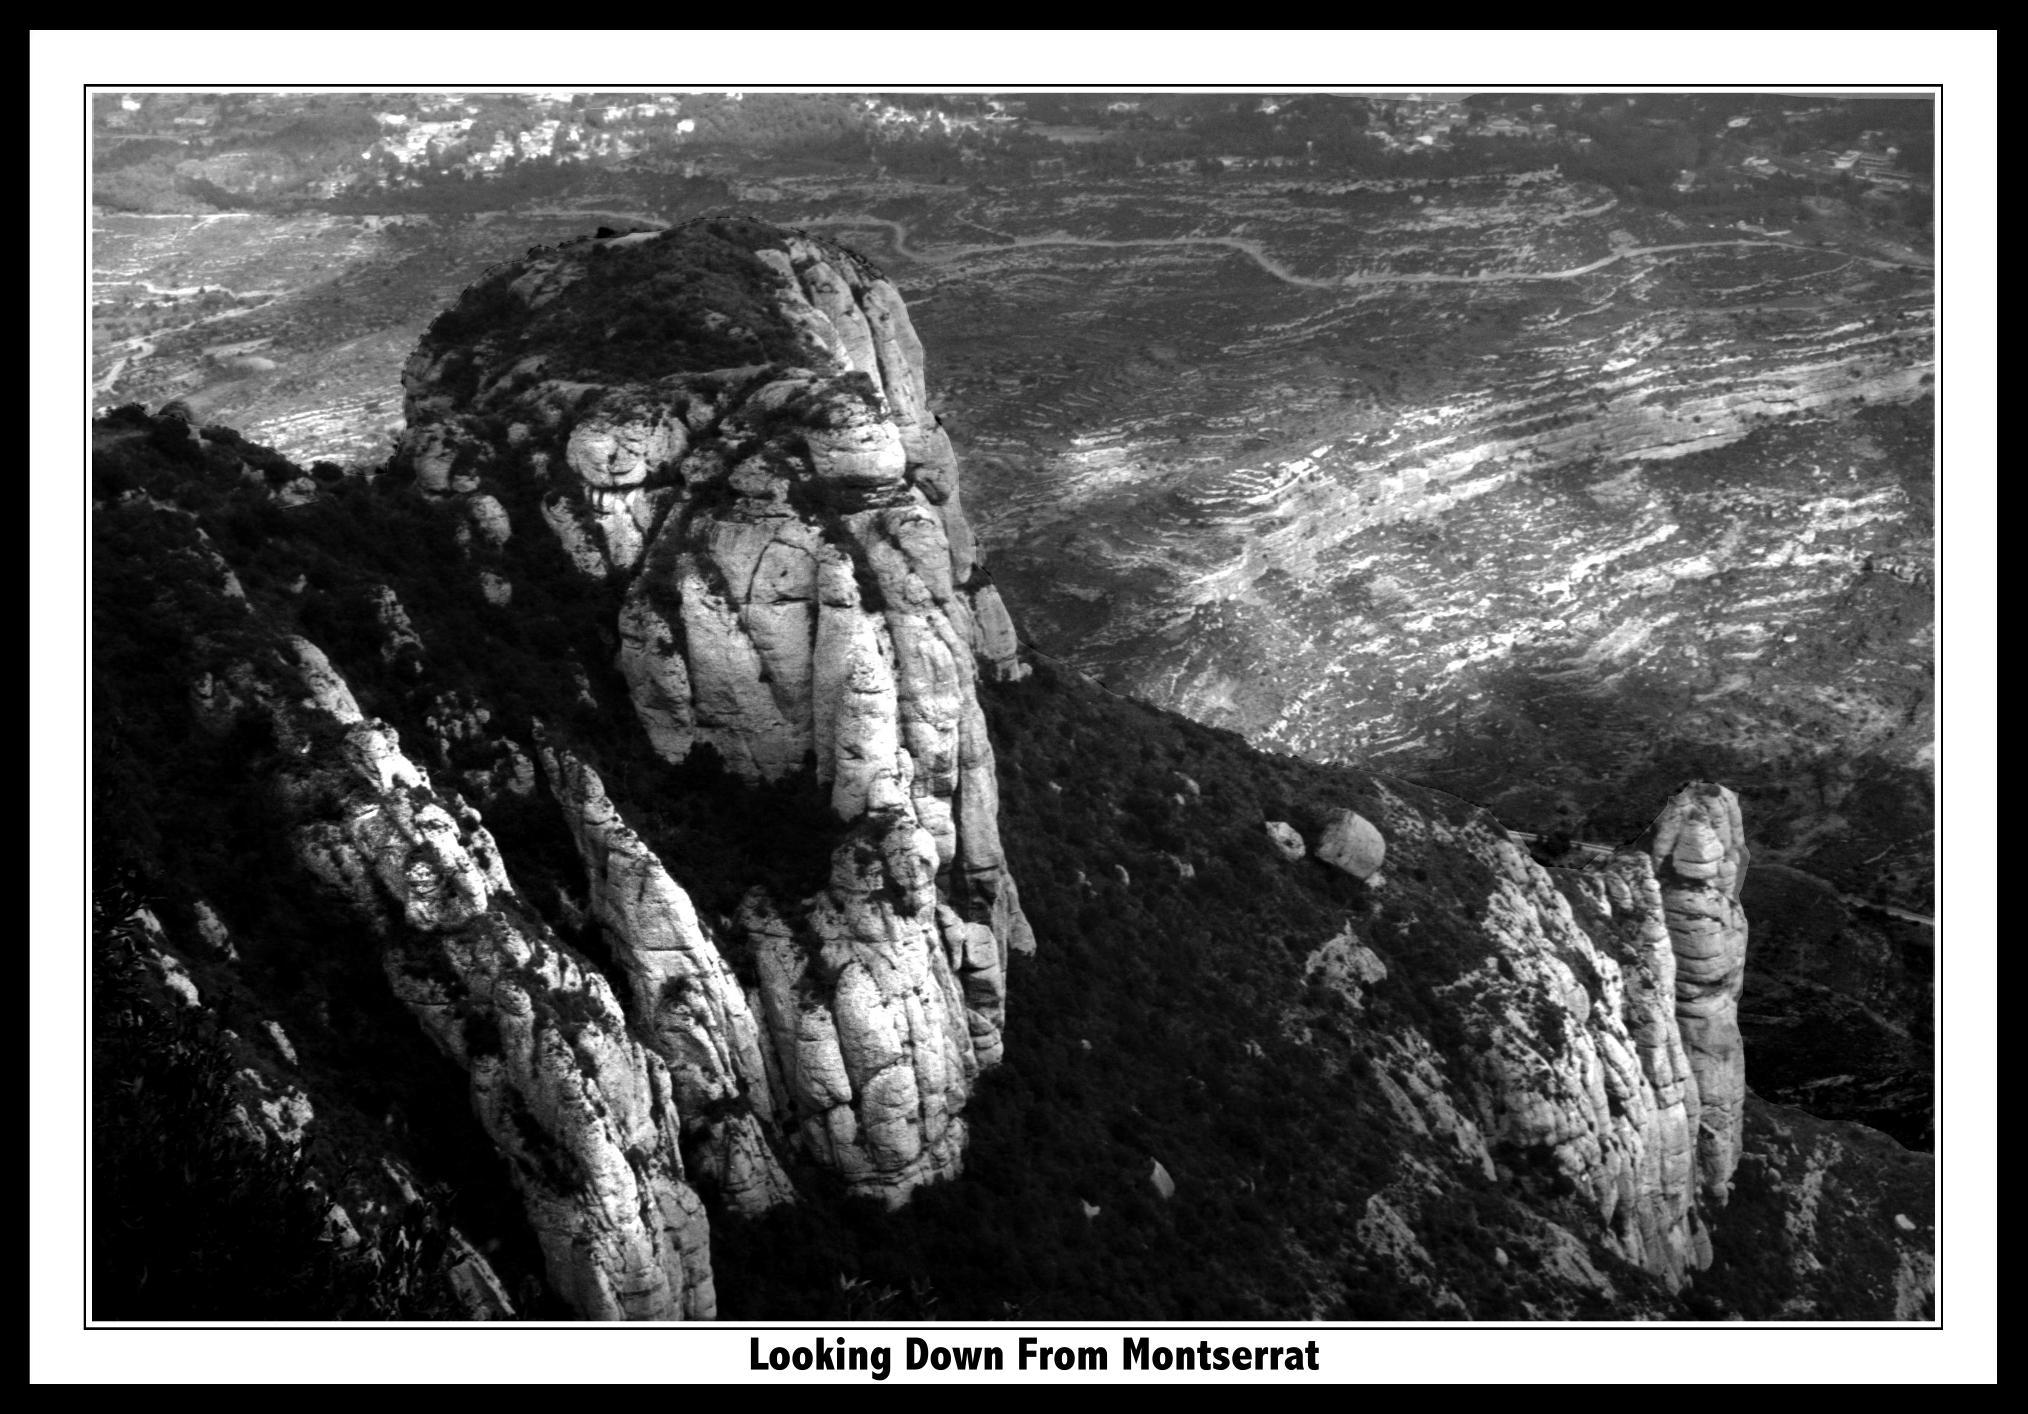 Looking down from Montserrat slideshow